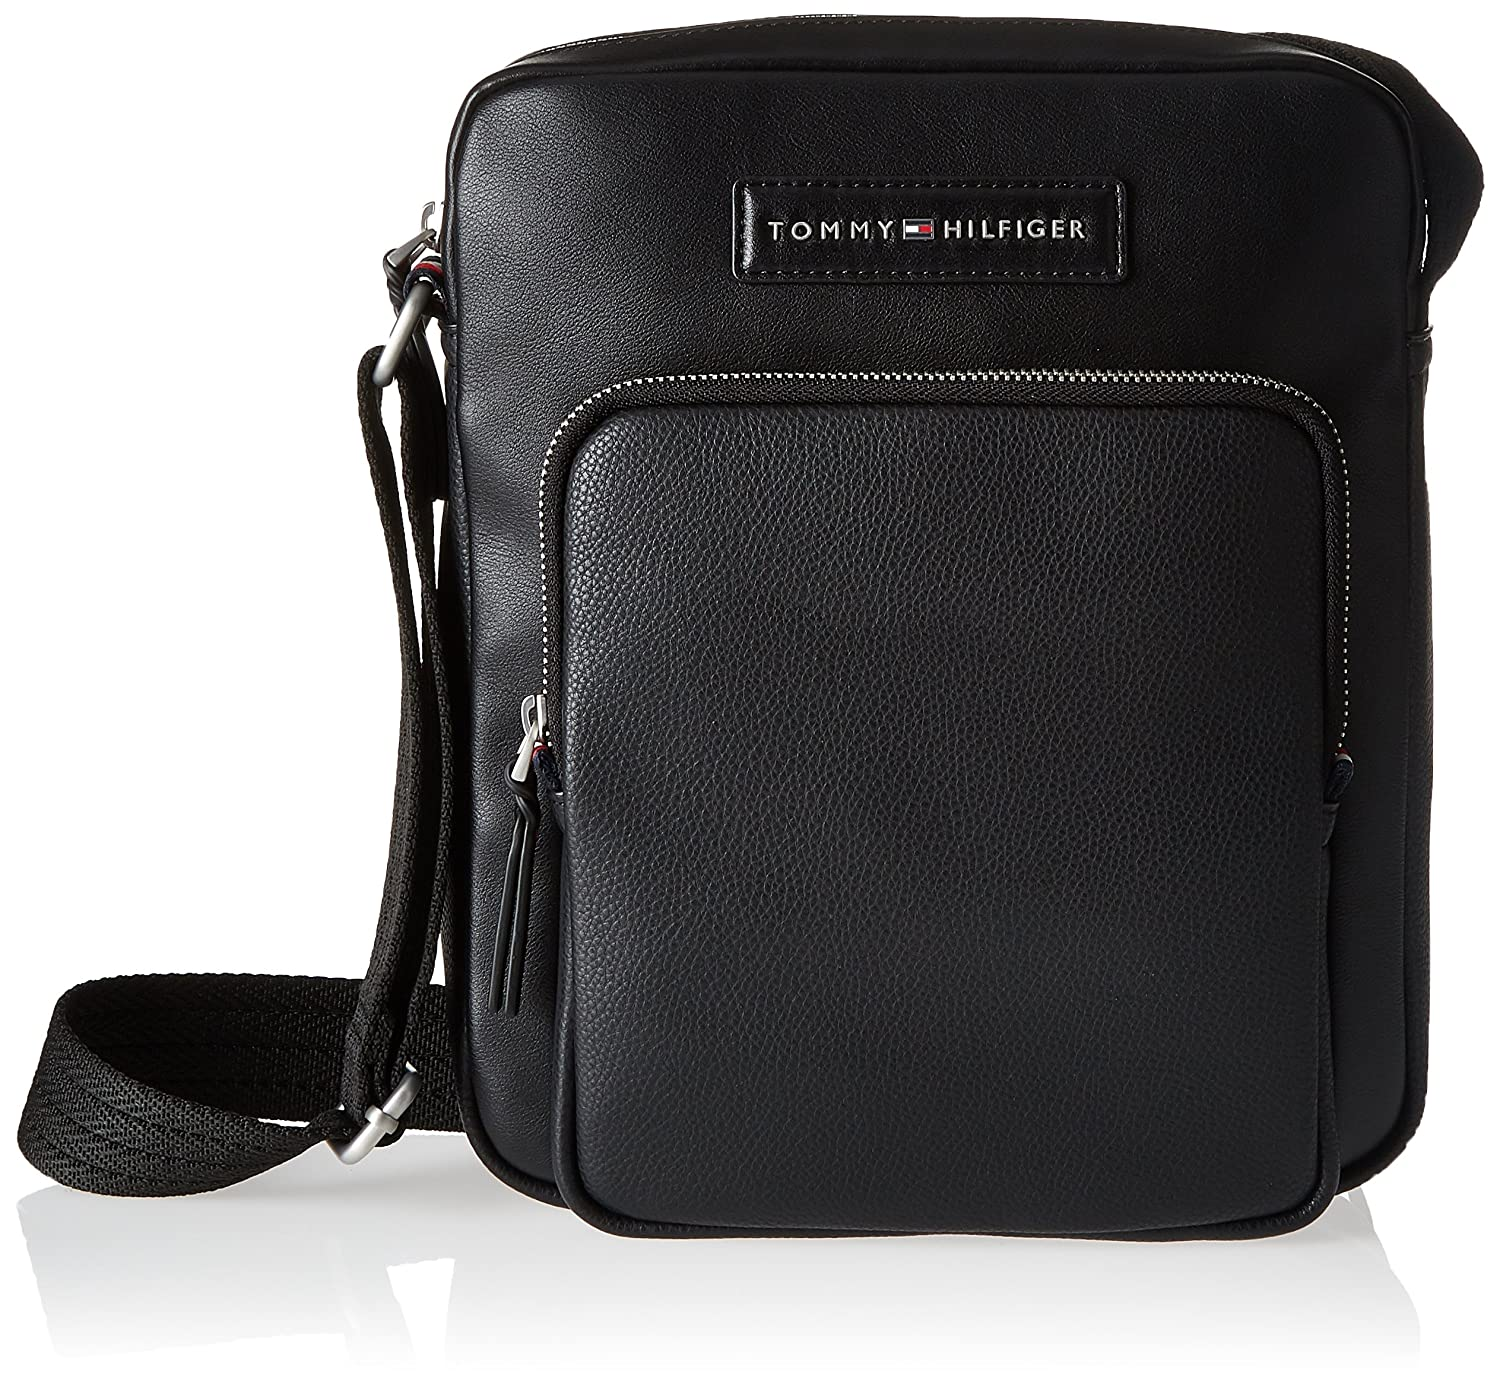 Tommy Hilfiger - Corporate Mix Reporter, Bolso Hombre, Negro (Black), 6x28x23 cm (B x H T) AM0AM03441